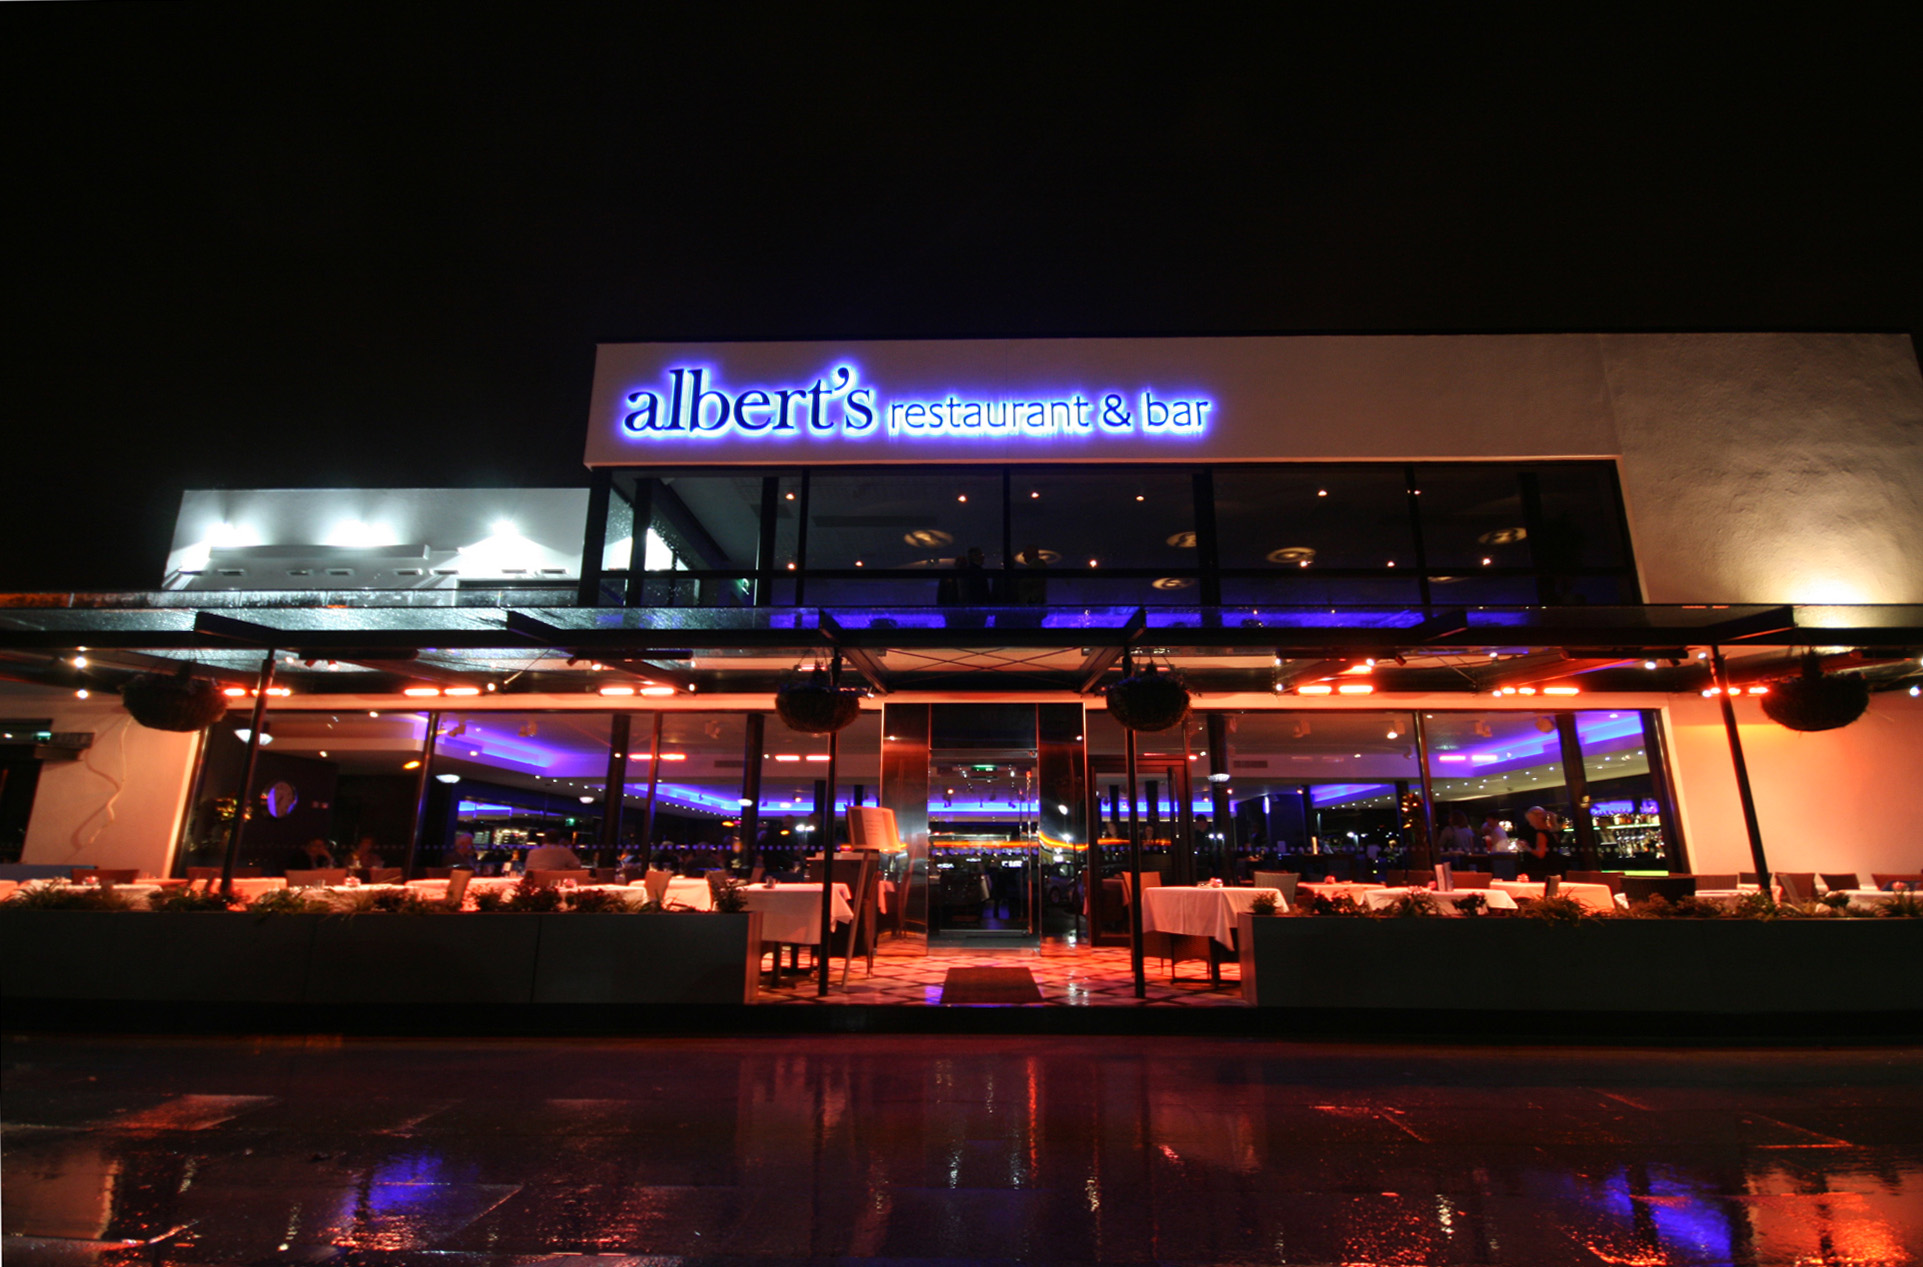 Albert's Restaurant and Bar Worsley - Exterior at night